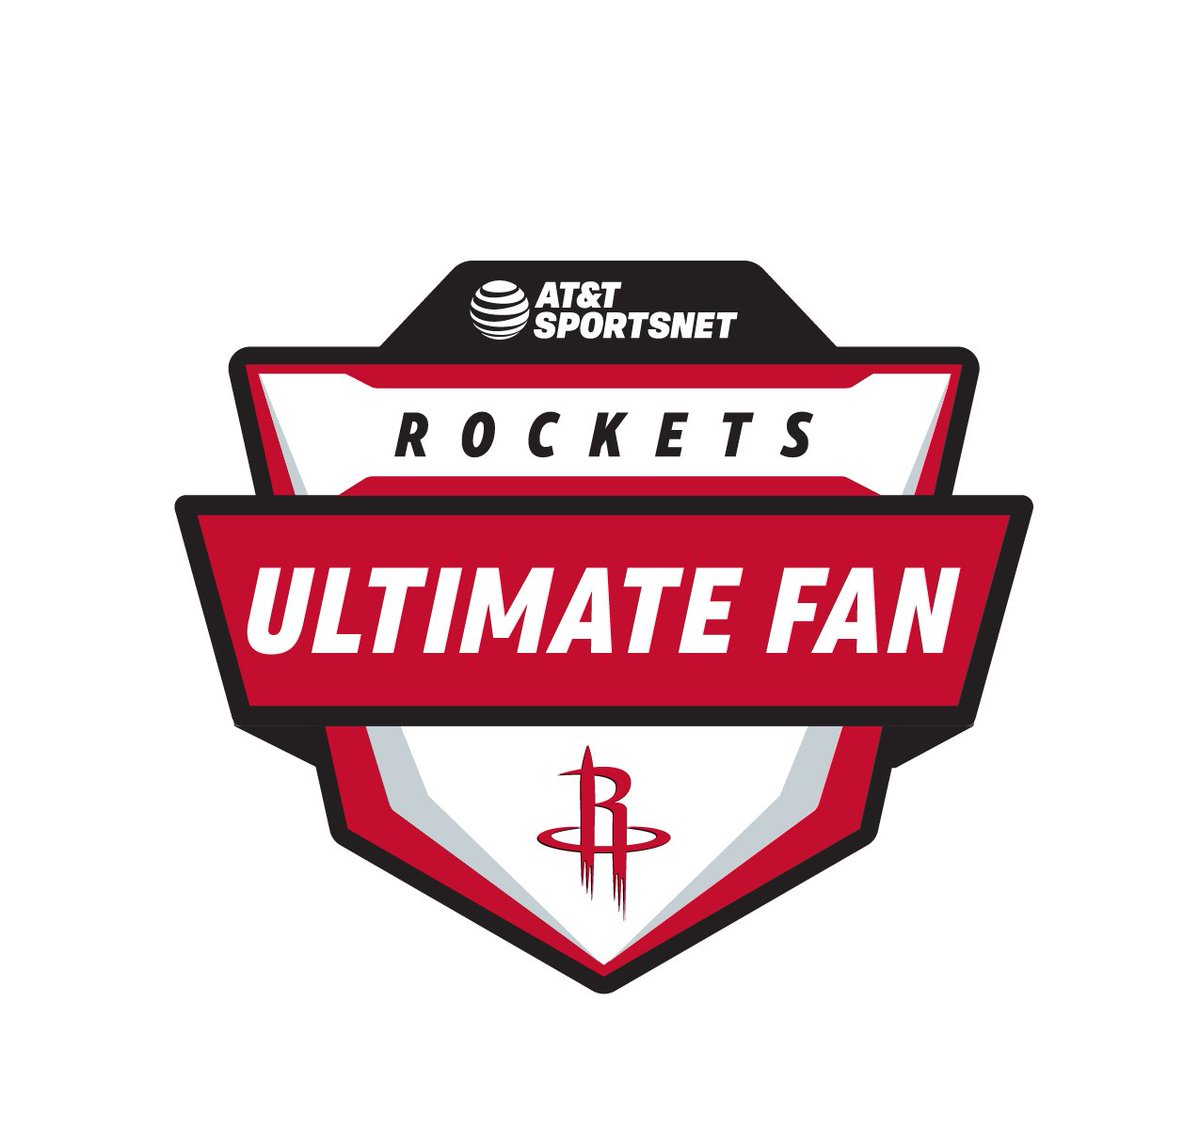 Are YOU the Ultimate #Rockets Fan?! We are looking for the ultimate hoops fan in the Southwest! 🏀   SOUTH TEXAS, February is your month! Use #UltimateRocketsFanSTX and show us why you are the Ultimate Fan! You could win a jersey and a trip to see the @HoustonRockets LIVE!